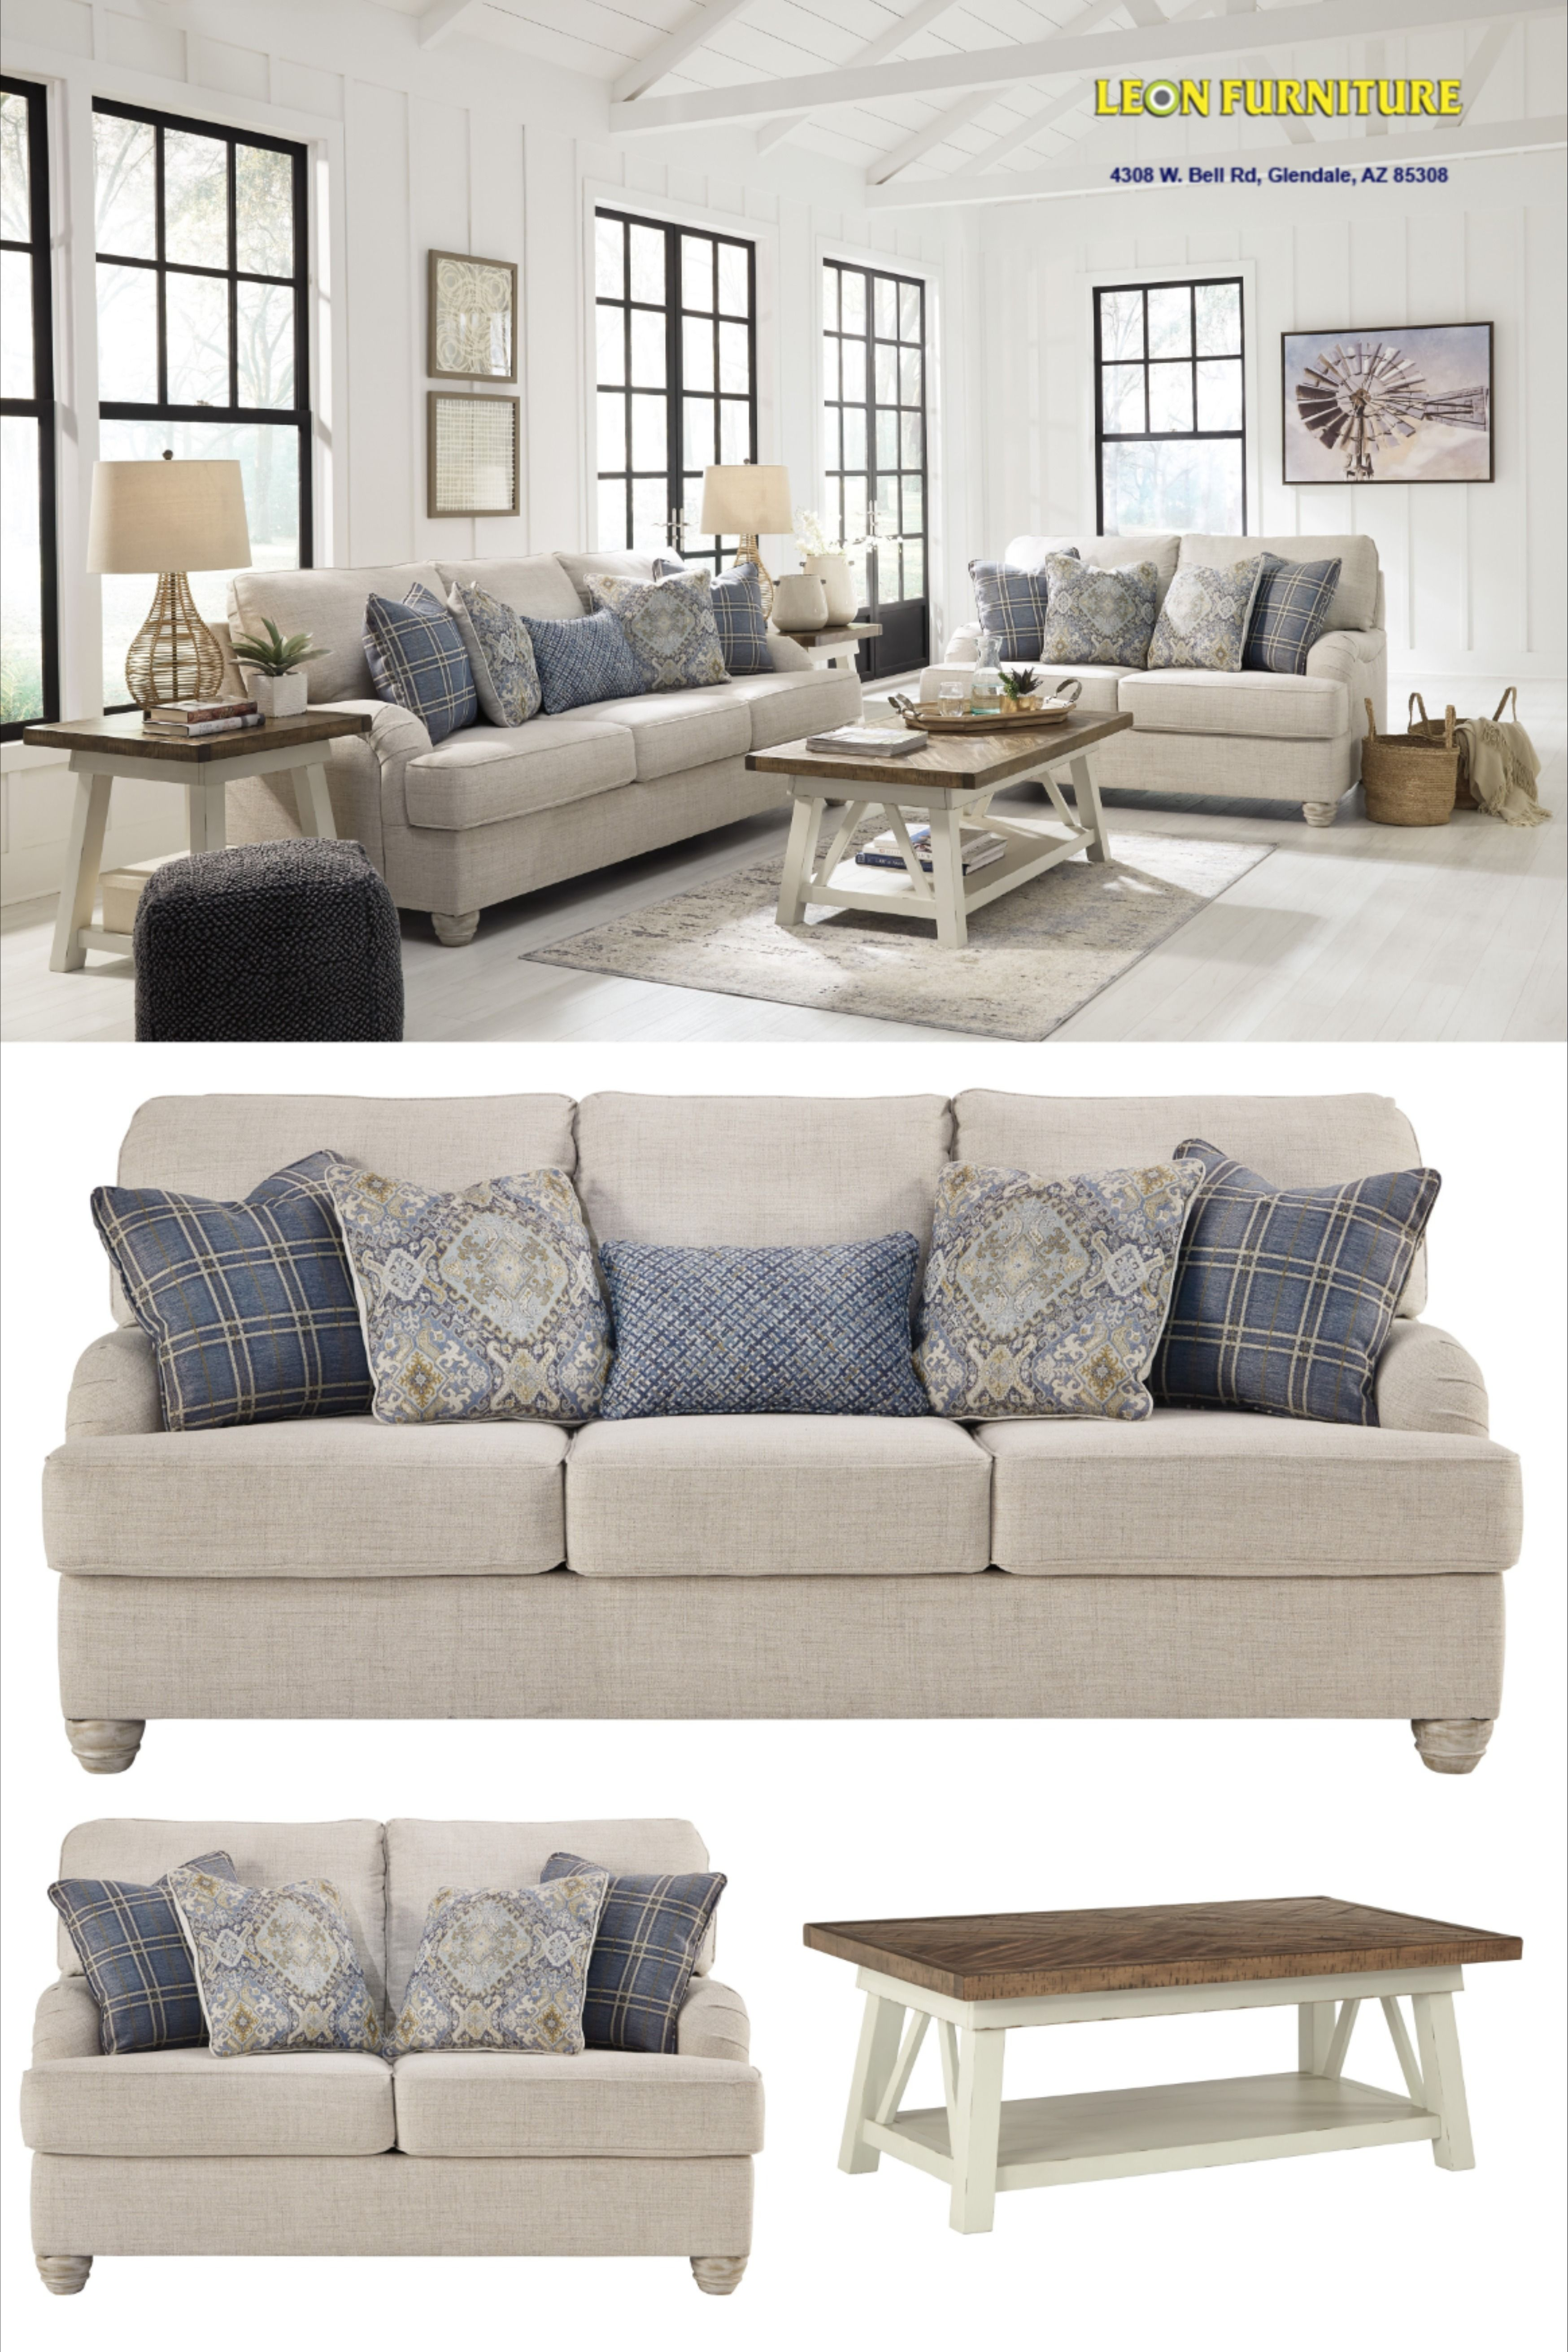 A Beautiful Sofa Set Is A Basic Need For A Living Room With